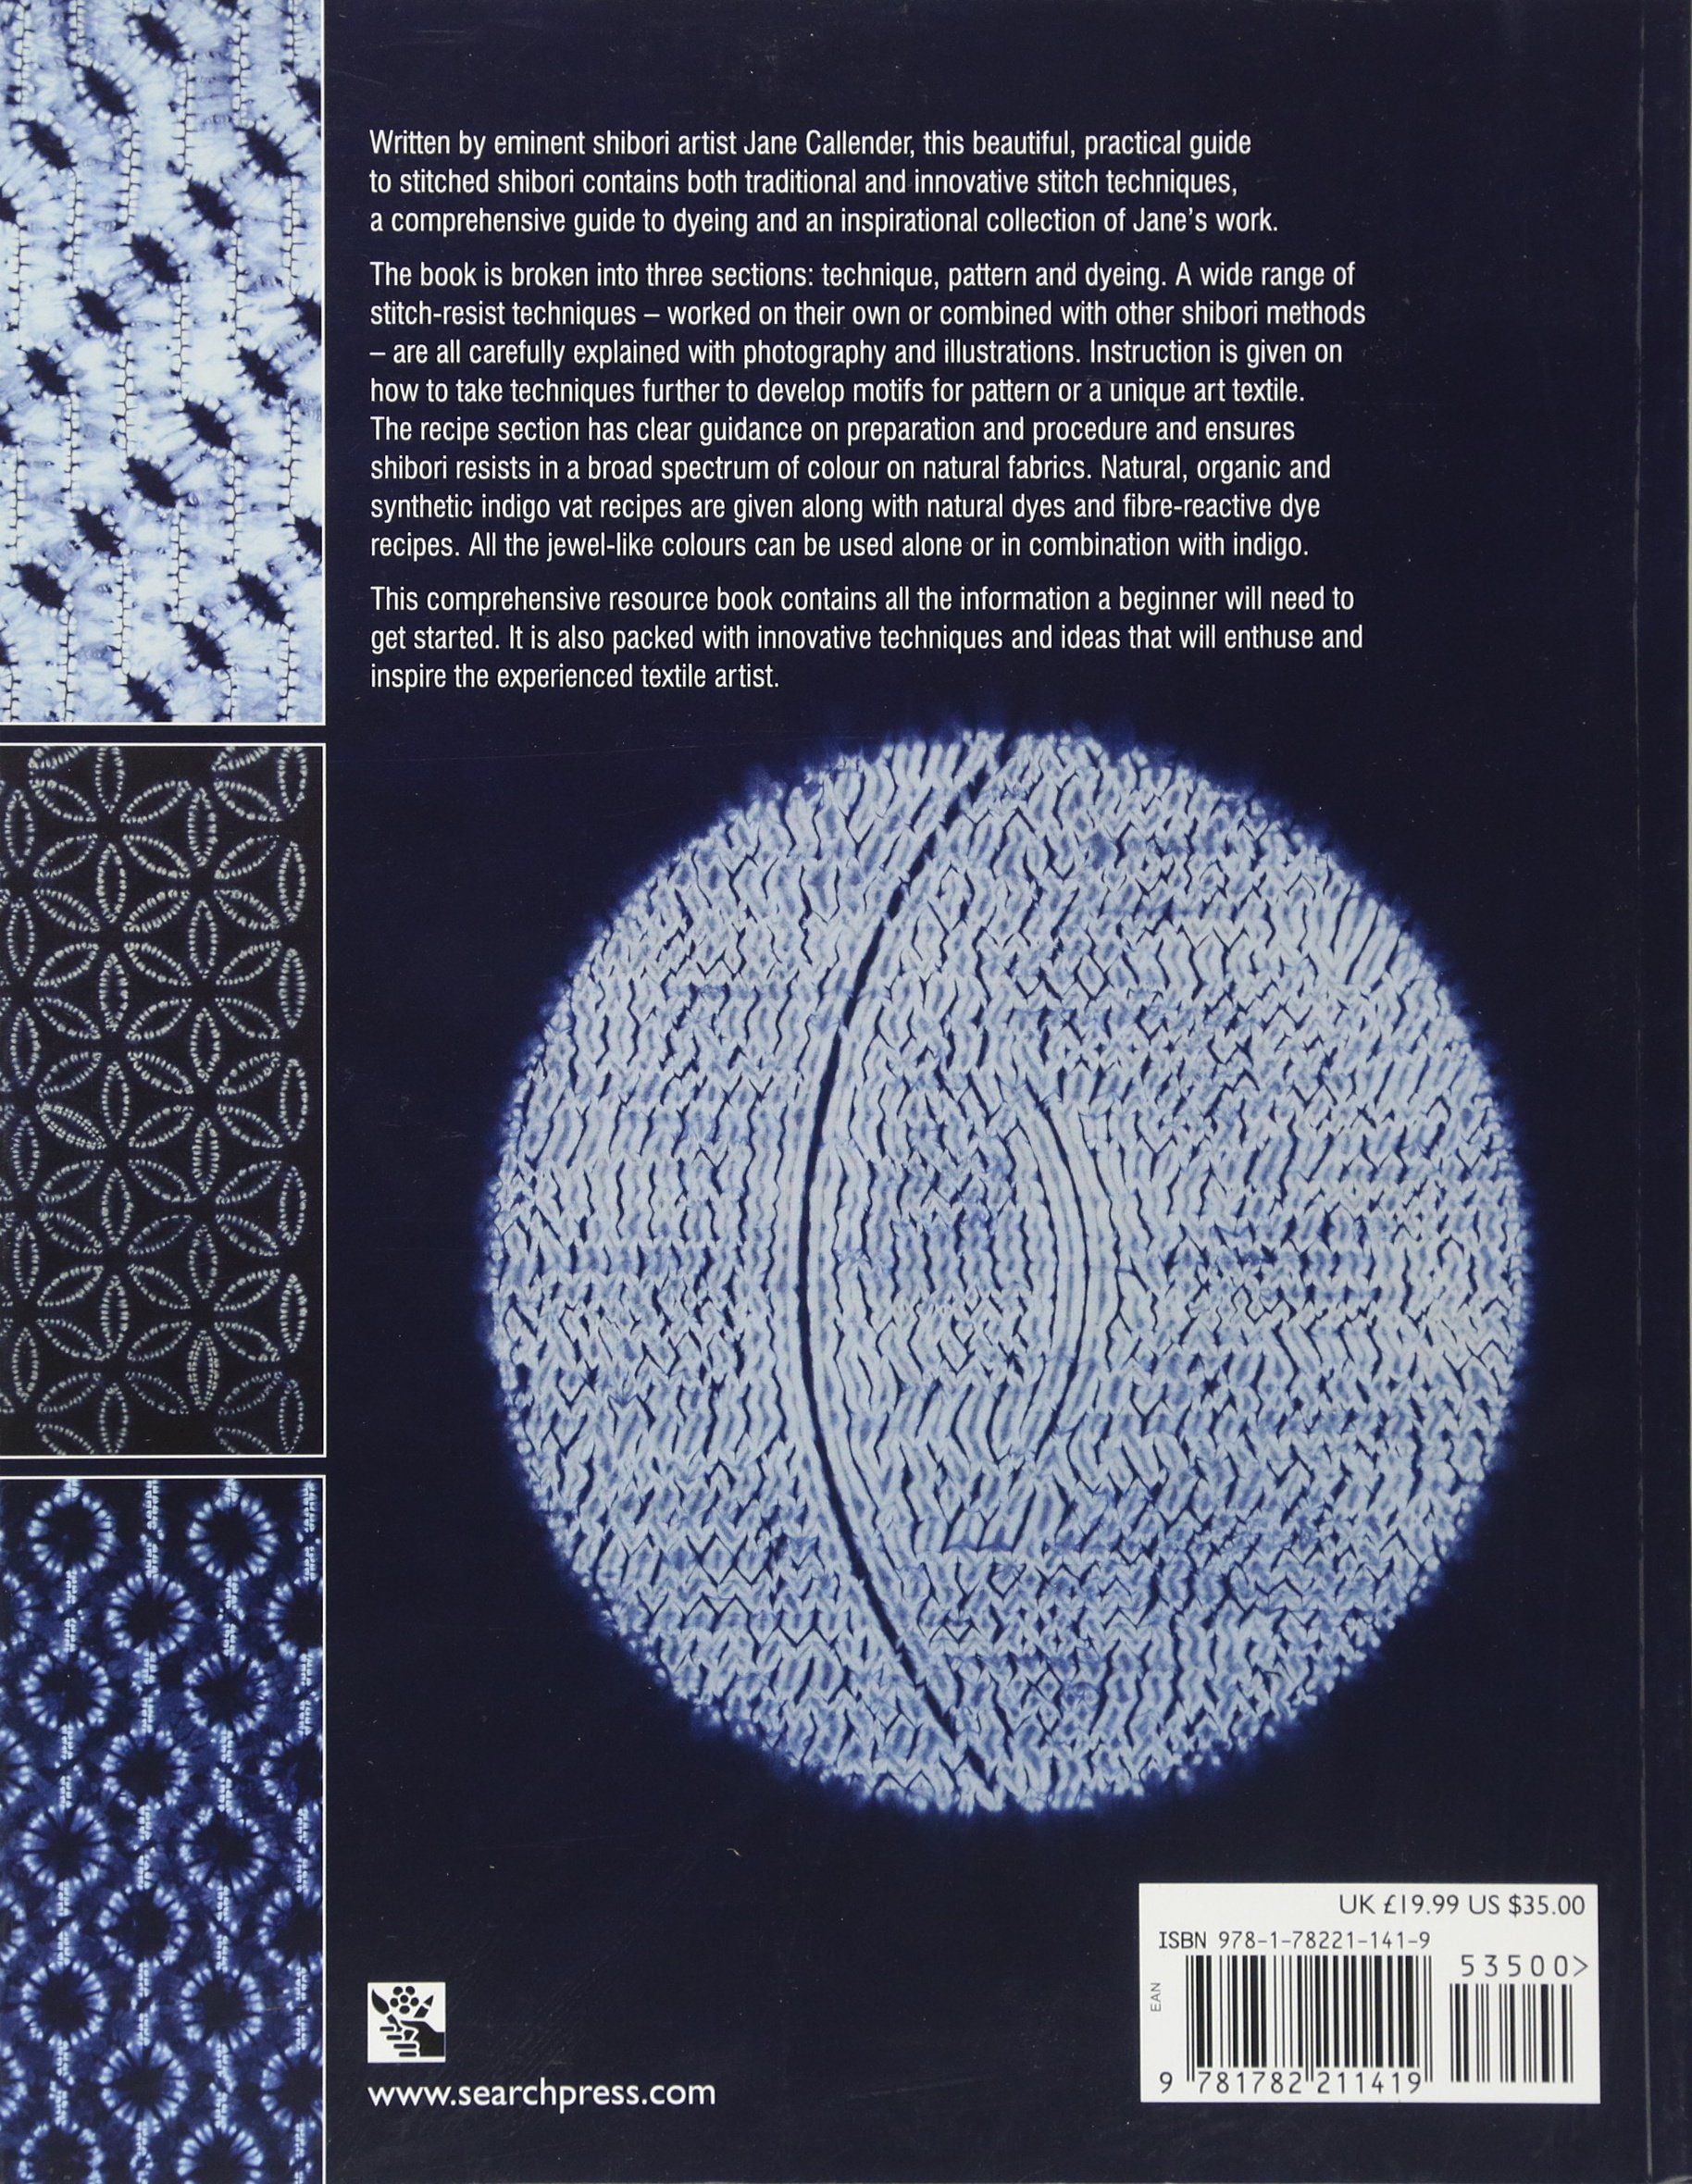 Amazon com: Stitched Shibori: Technique, innovation, pattern